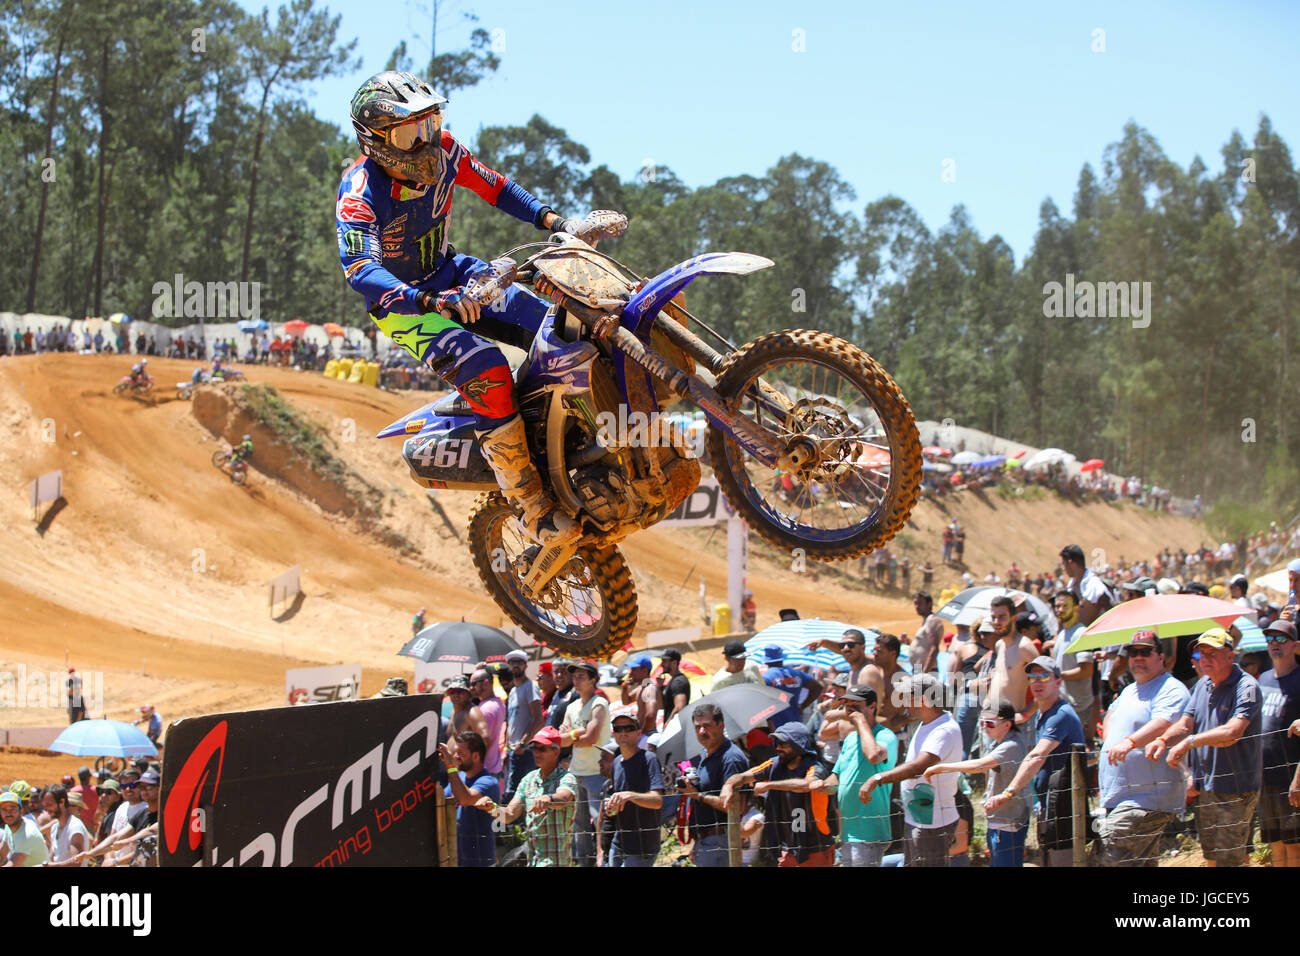 Romain Febvre #461 (FRA) in Yamaha of Monster Energy Yamaha Factory MXGP Team in action during the MXGP World Championship Stock Photo